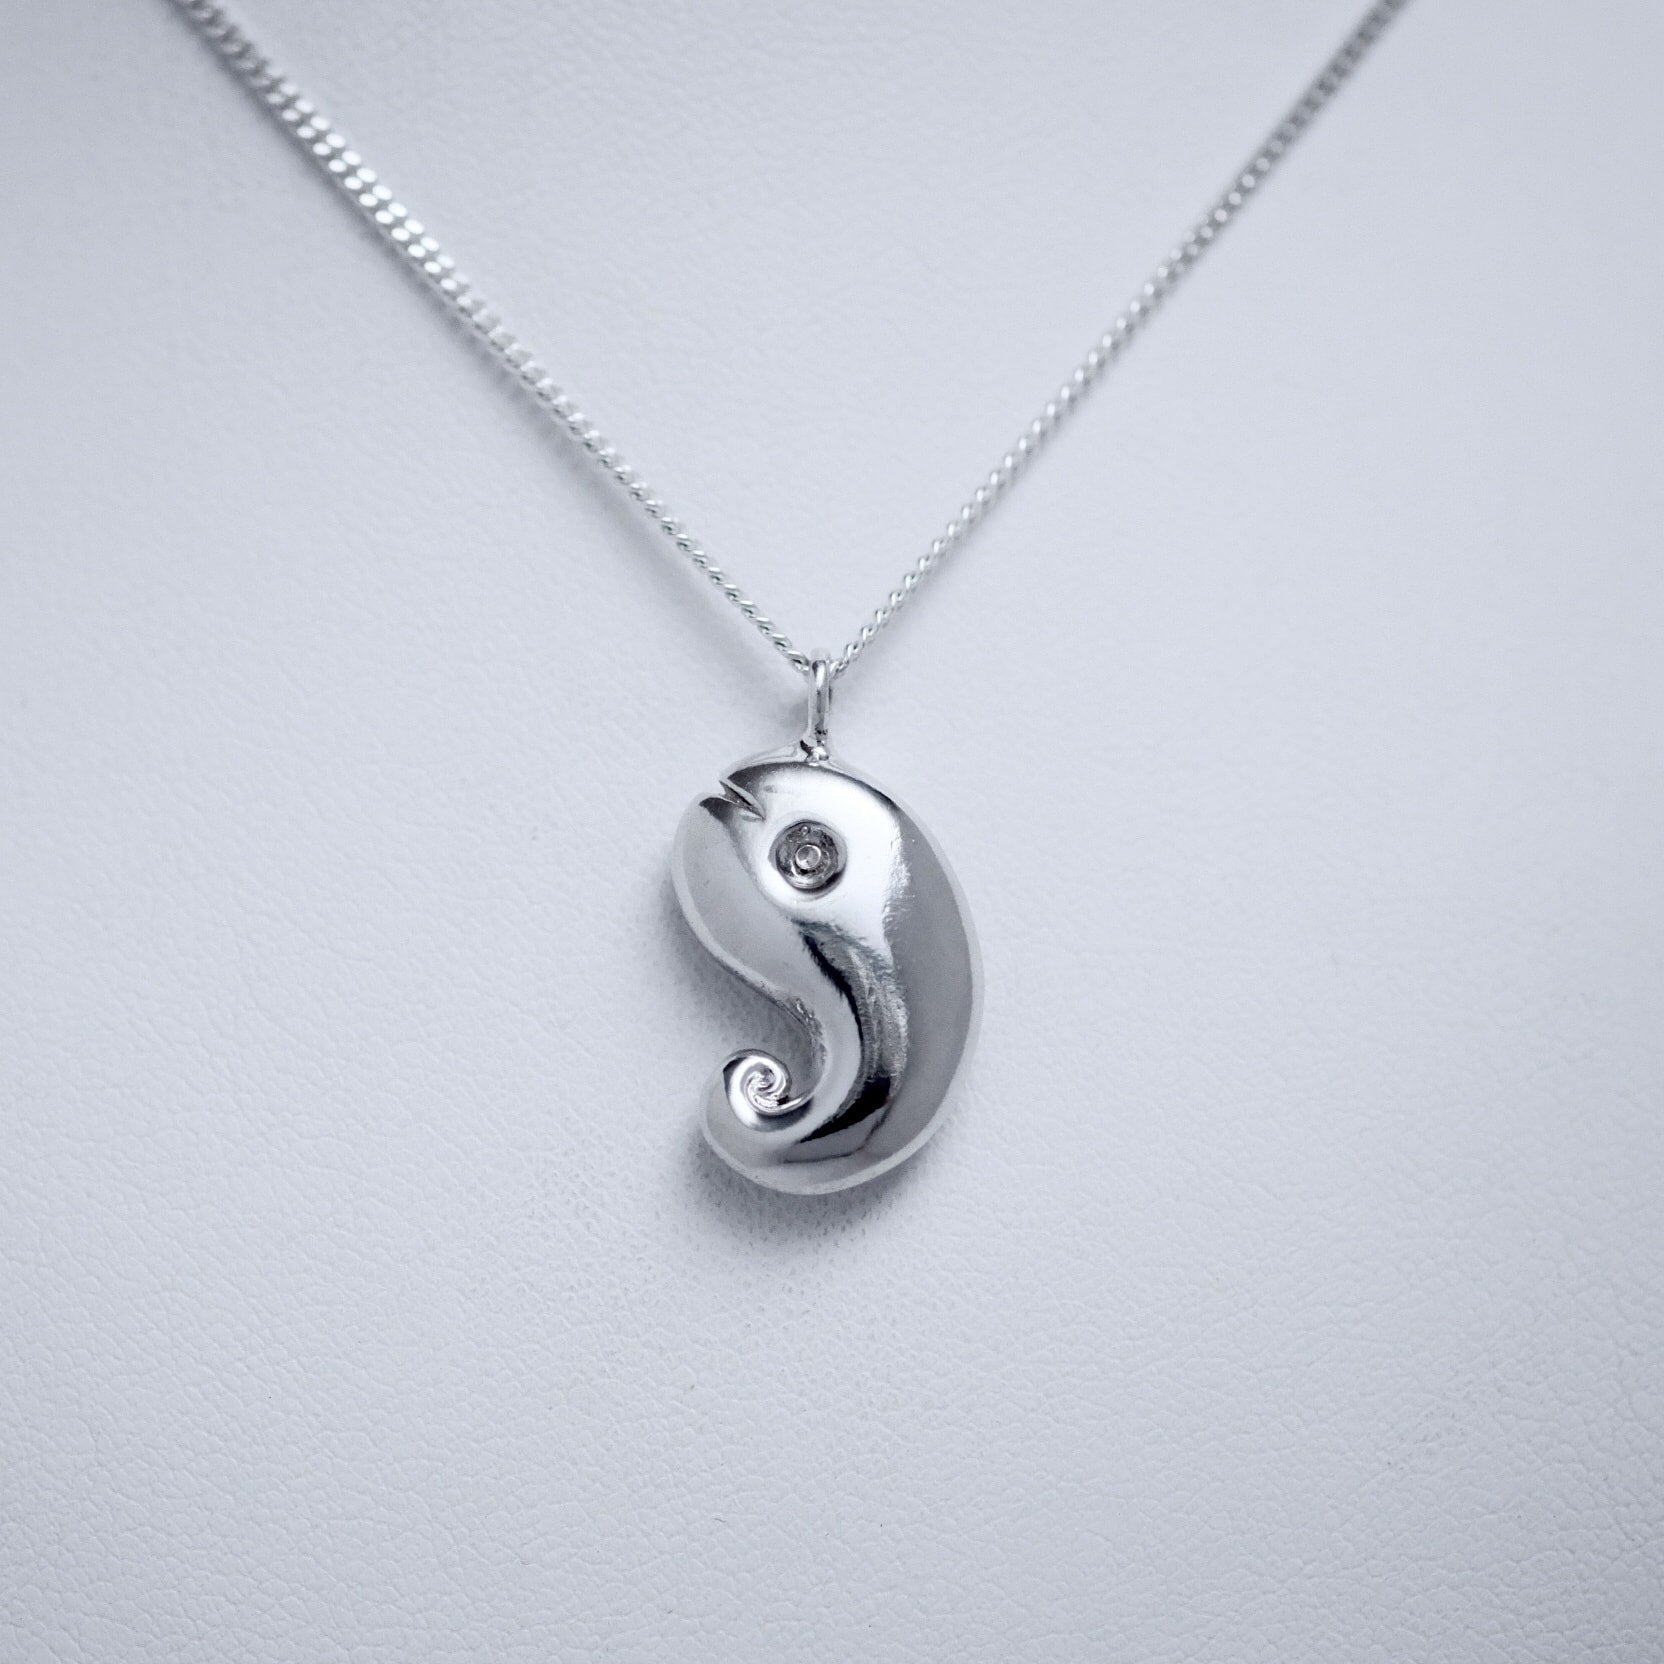 Yin & Yang Line of Love sterling silver pendant by Joseph Chiang